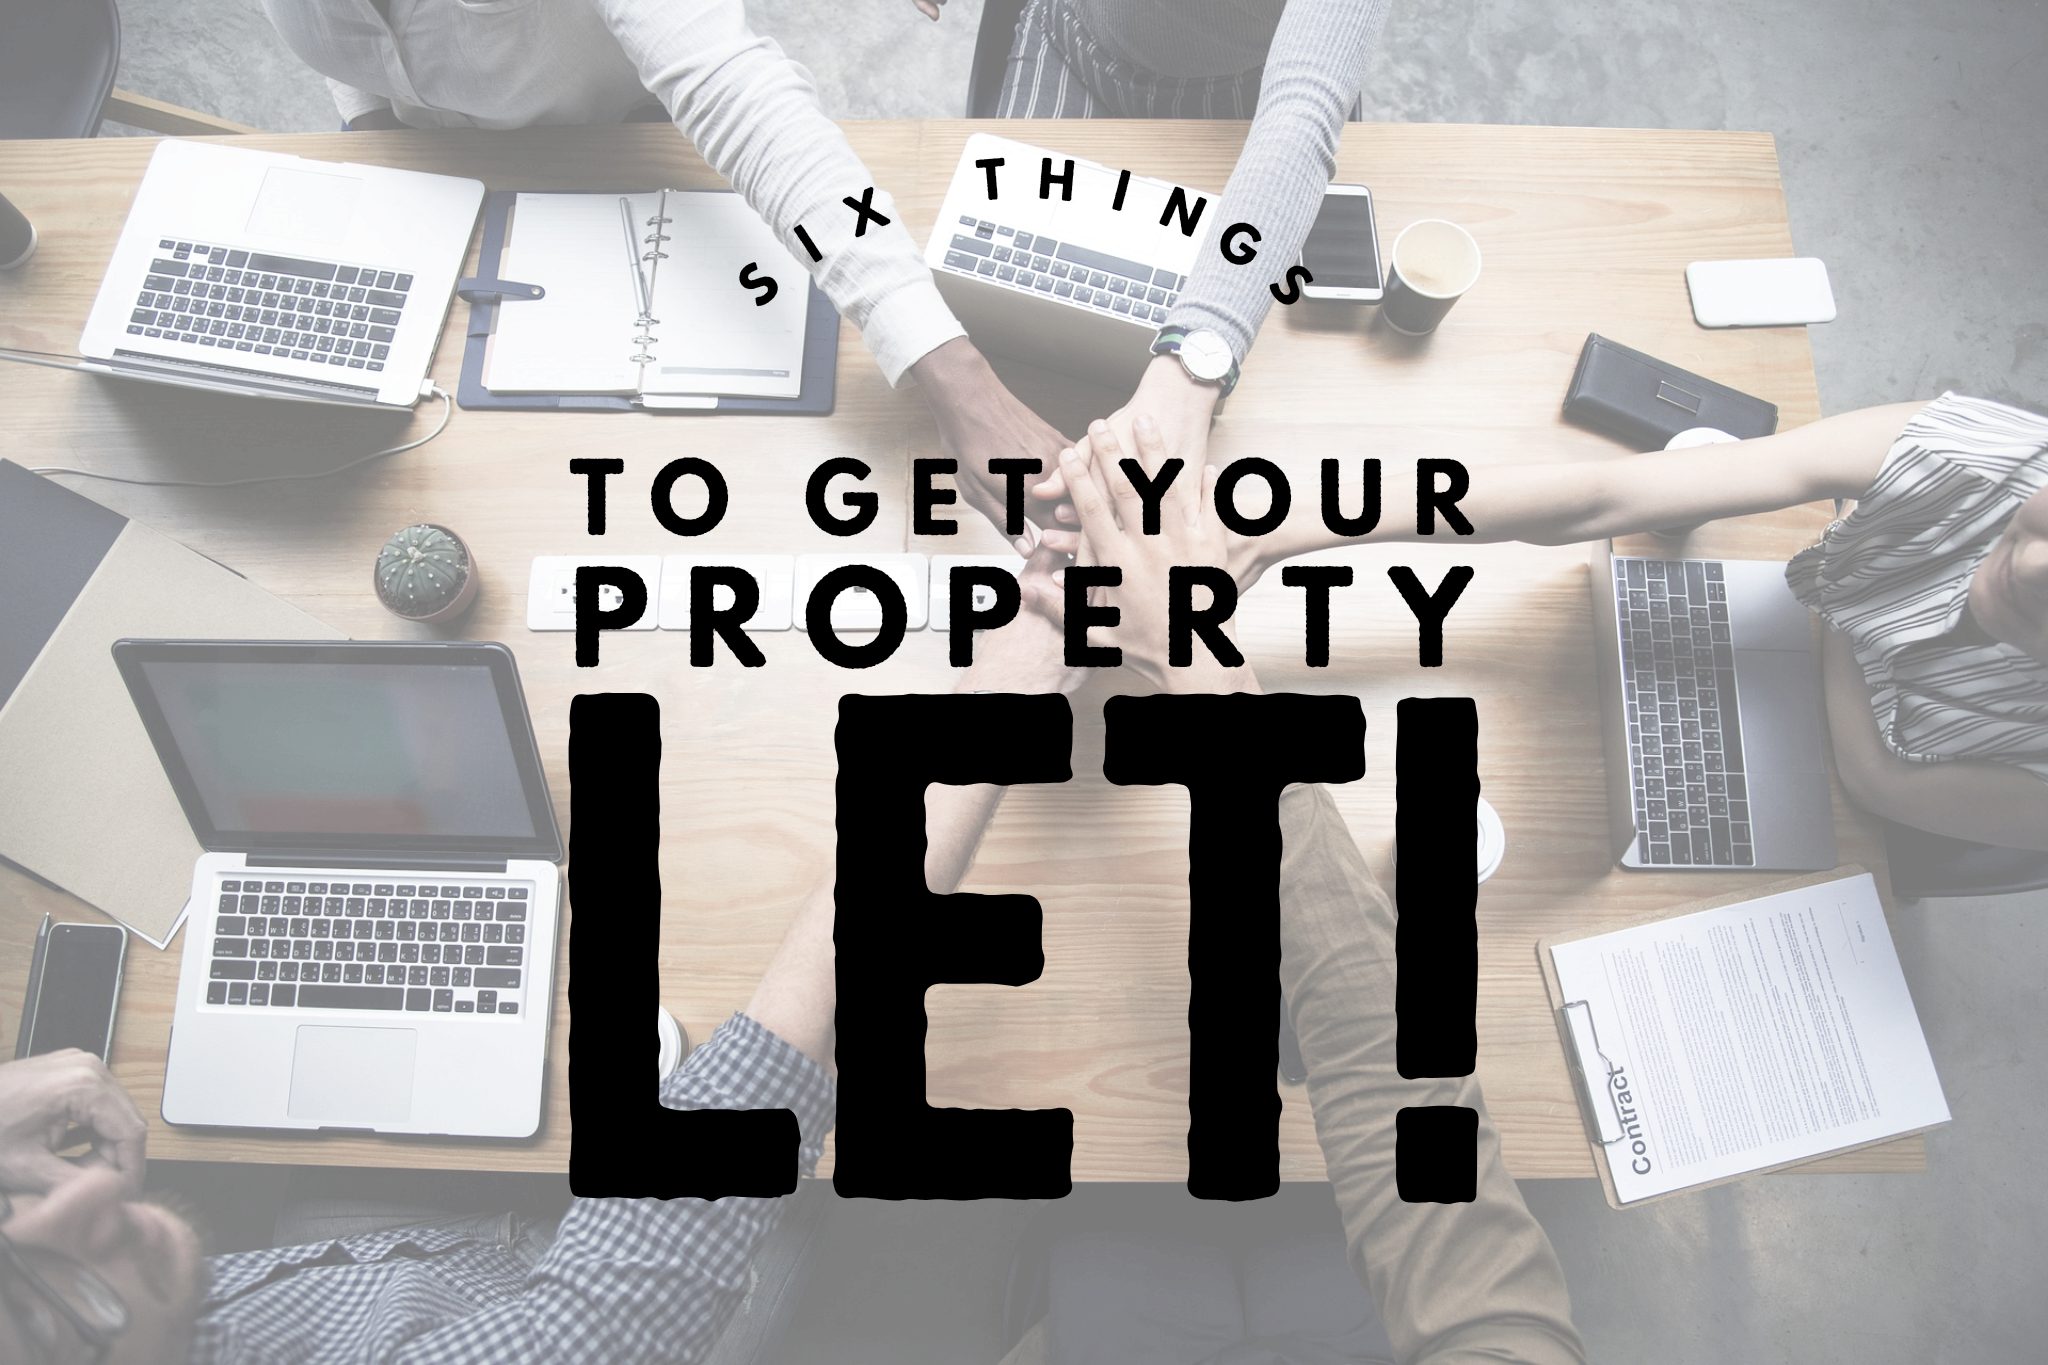 My property won't rent: Okay, here are six things you can do